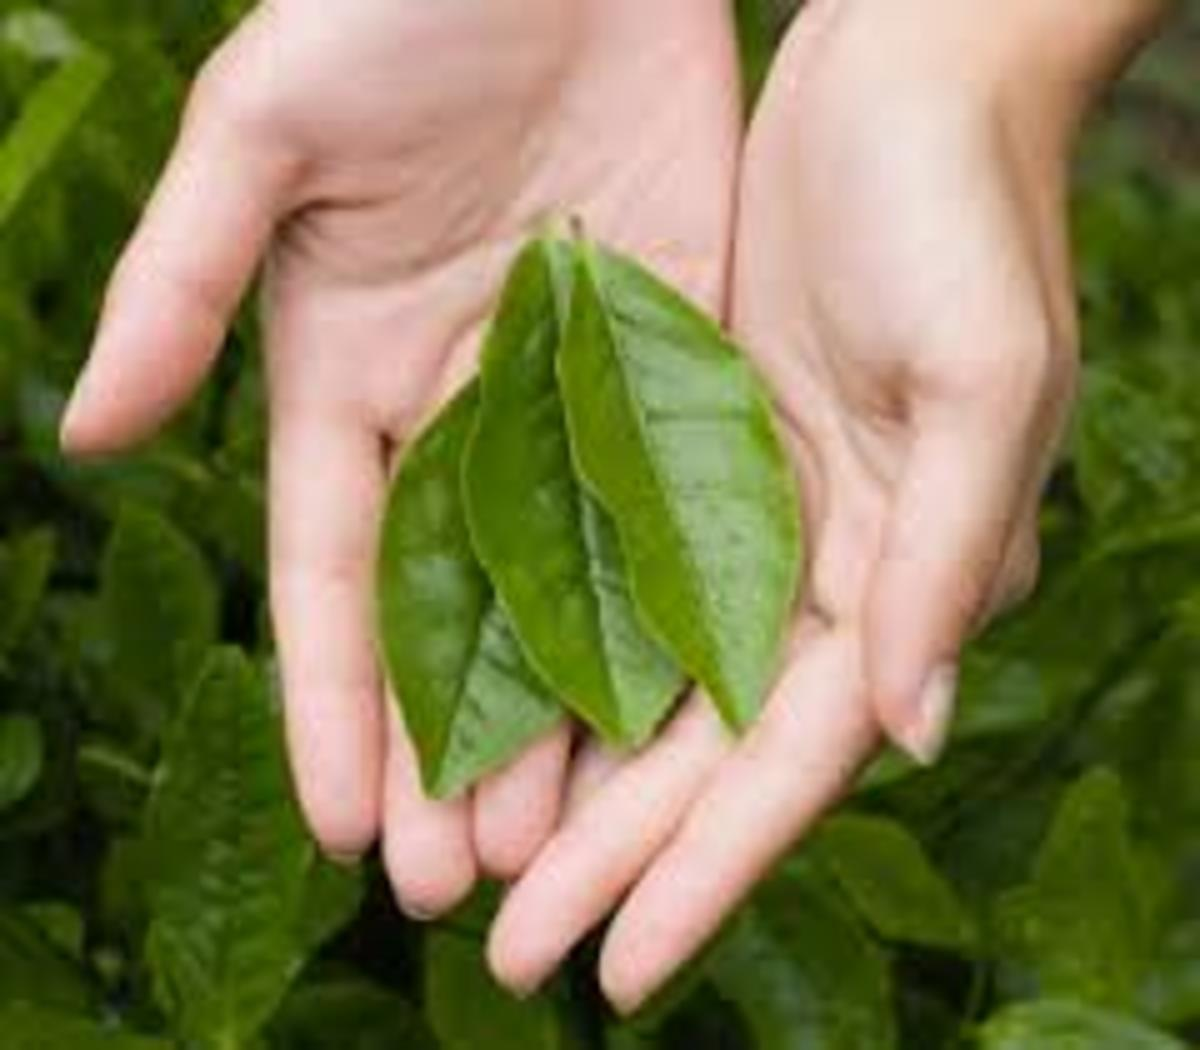 Green Tea leaves. Journal of Nutrition states that tea is the number one source of flavonoids (those cancer- and cholesterol-busting antioxidants) in the American diet.